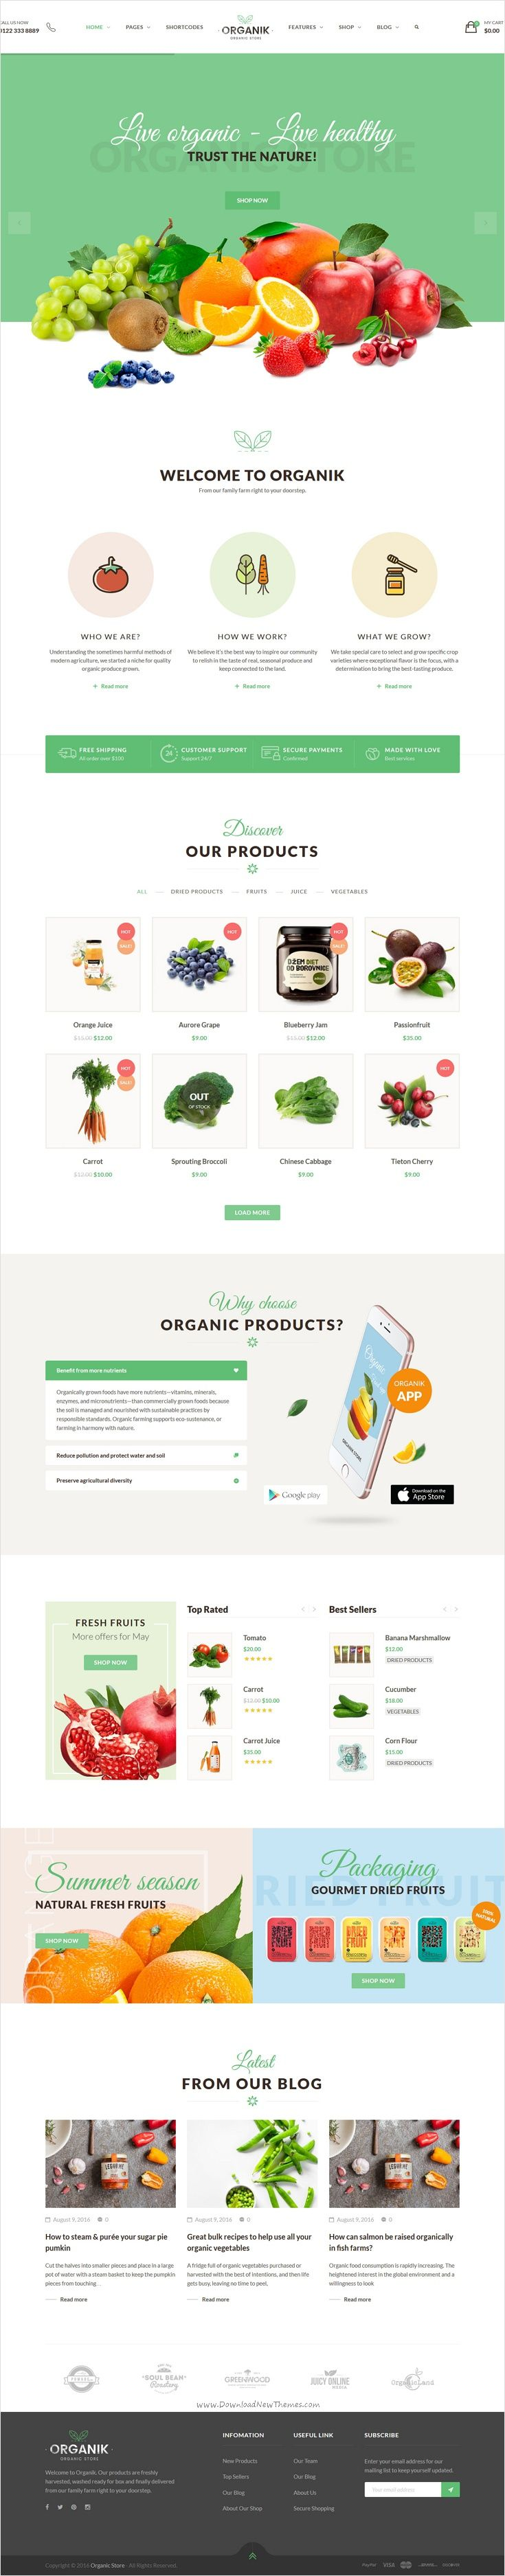 Organik is a wonderful 4 in 1 #WordPress WooCommerce theme designed specially for #webdev #organic #store, farm & bakery industry download now➩ https://themeforest.net/item/organik-an-appealing-organic-store-farm-bakery-woocomerce-theme/17678863?ref=Datasata